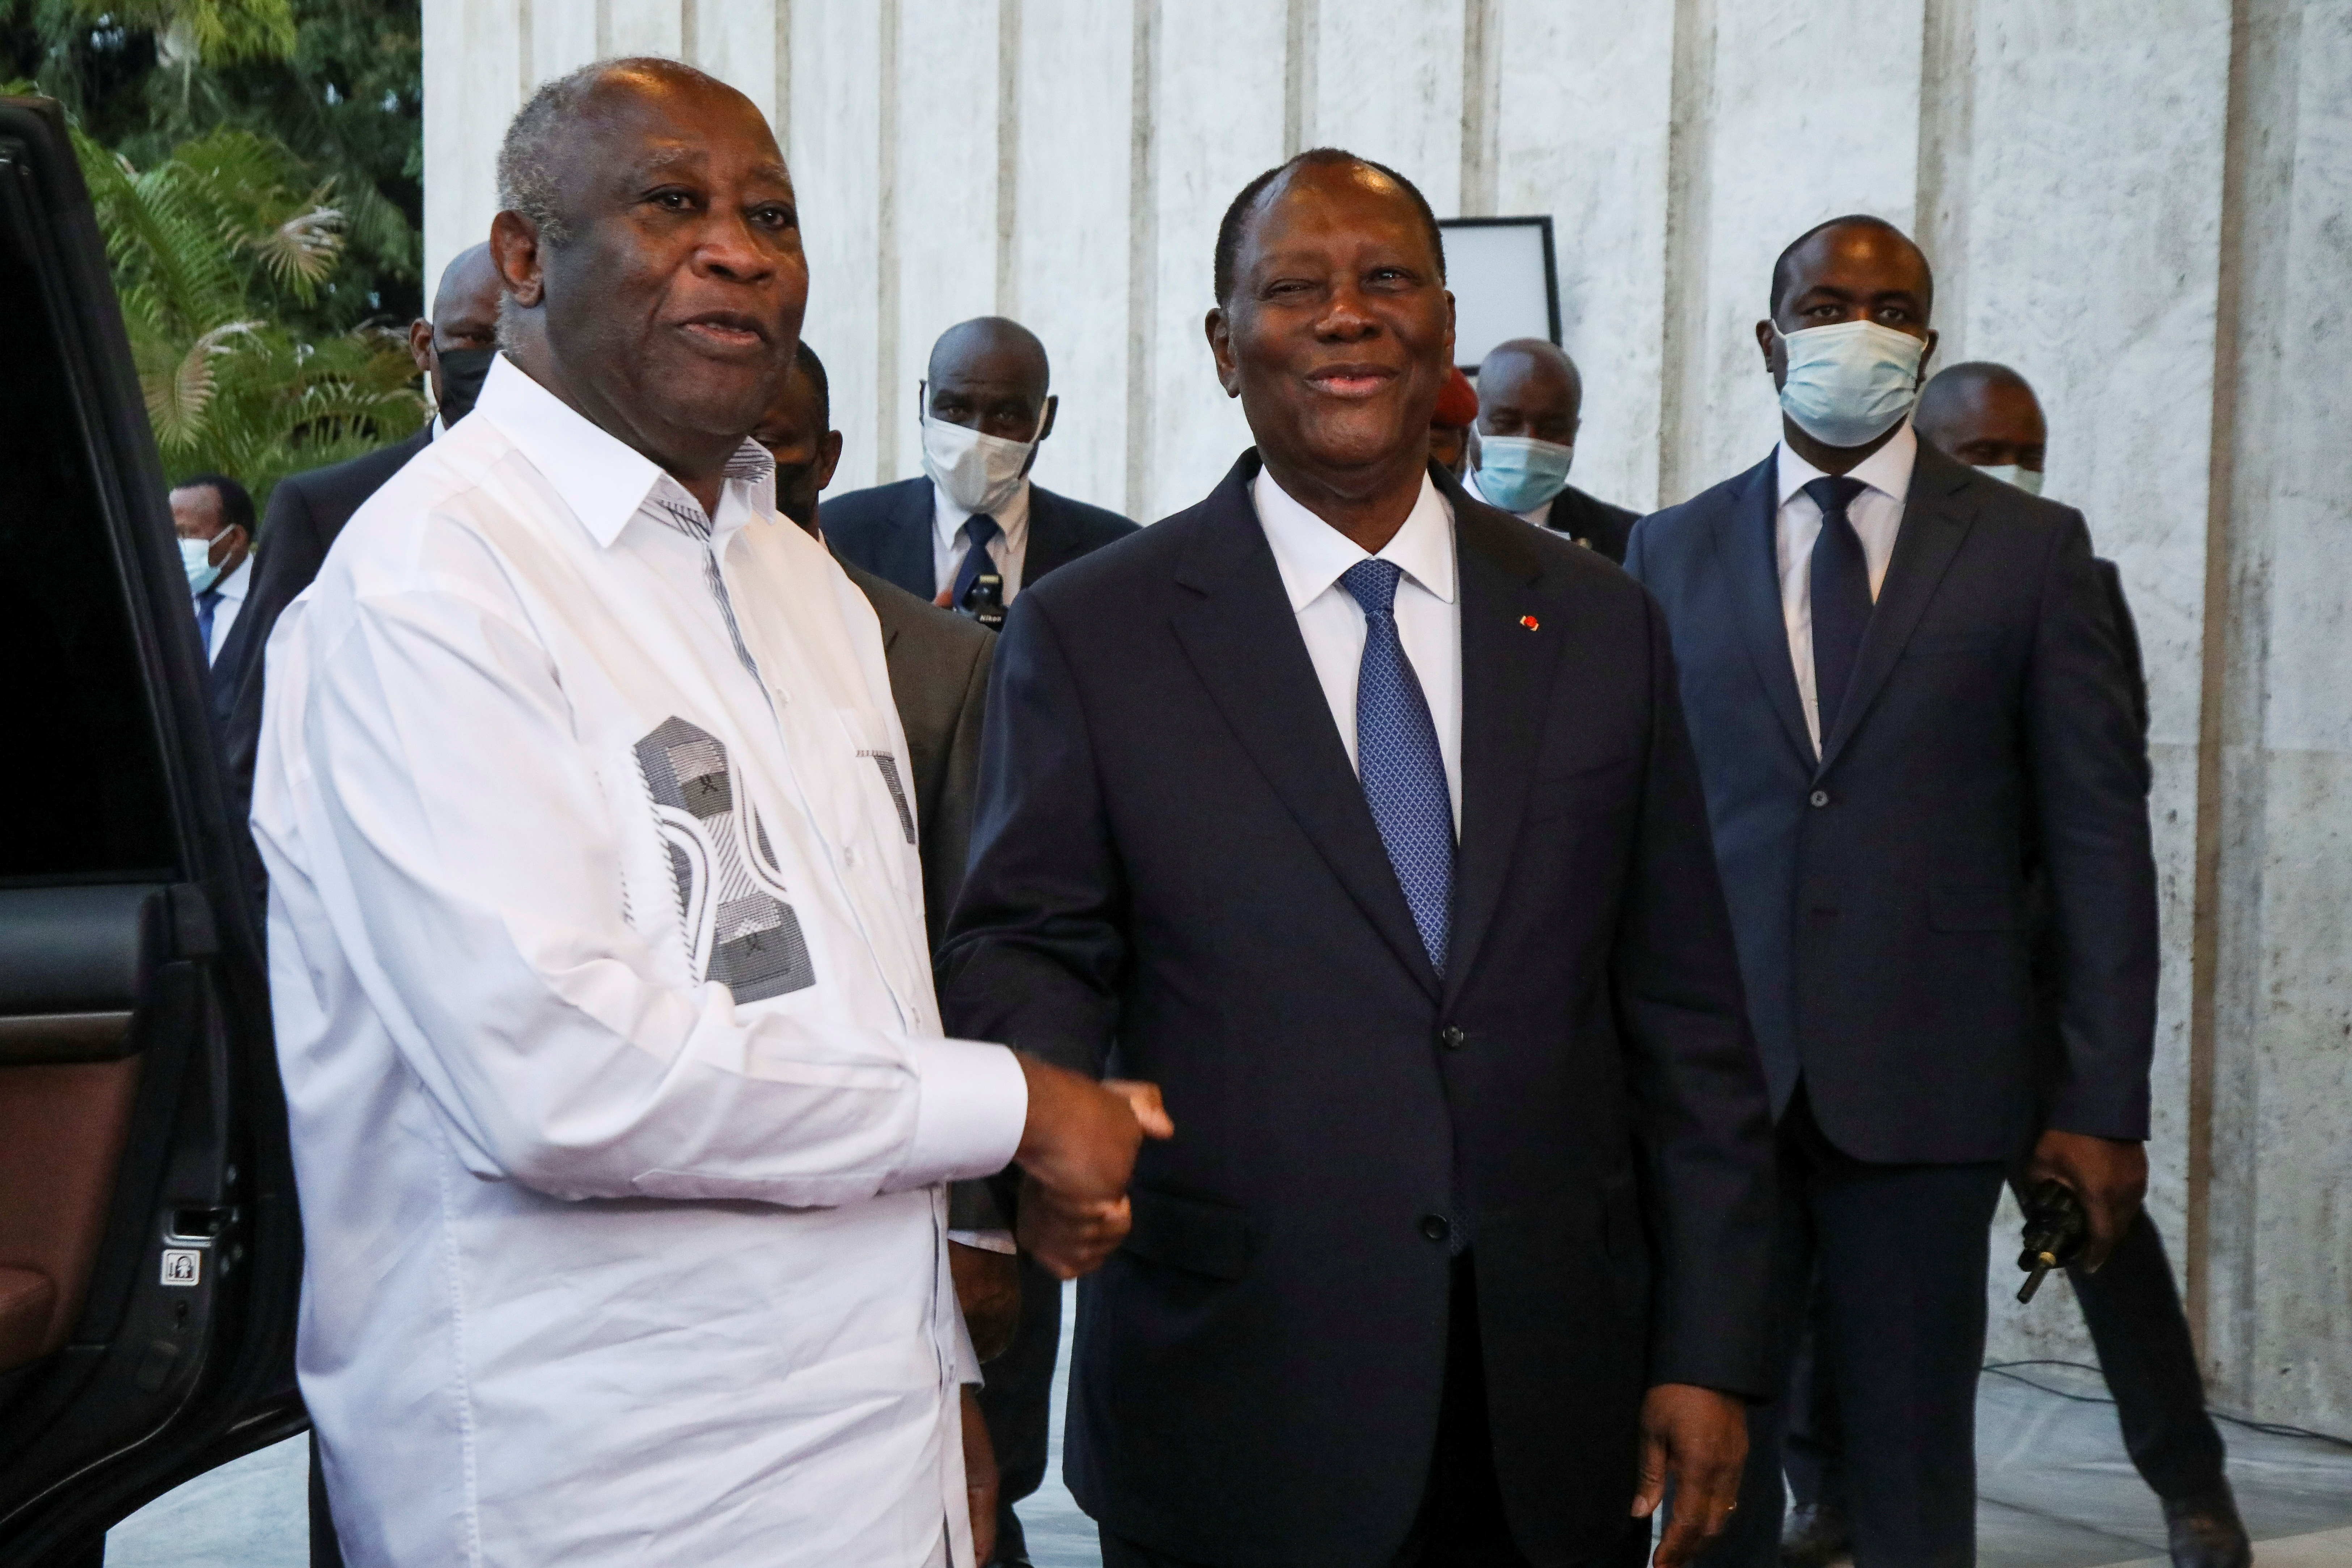 Ivory Coast's President Alassane Ouattara shakes hands with former President Laurent Gbagbo during a meeting at the presidential palace in Abidjan, Ivory Coast July 27, 2021. REUTERS/Luc Gnago